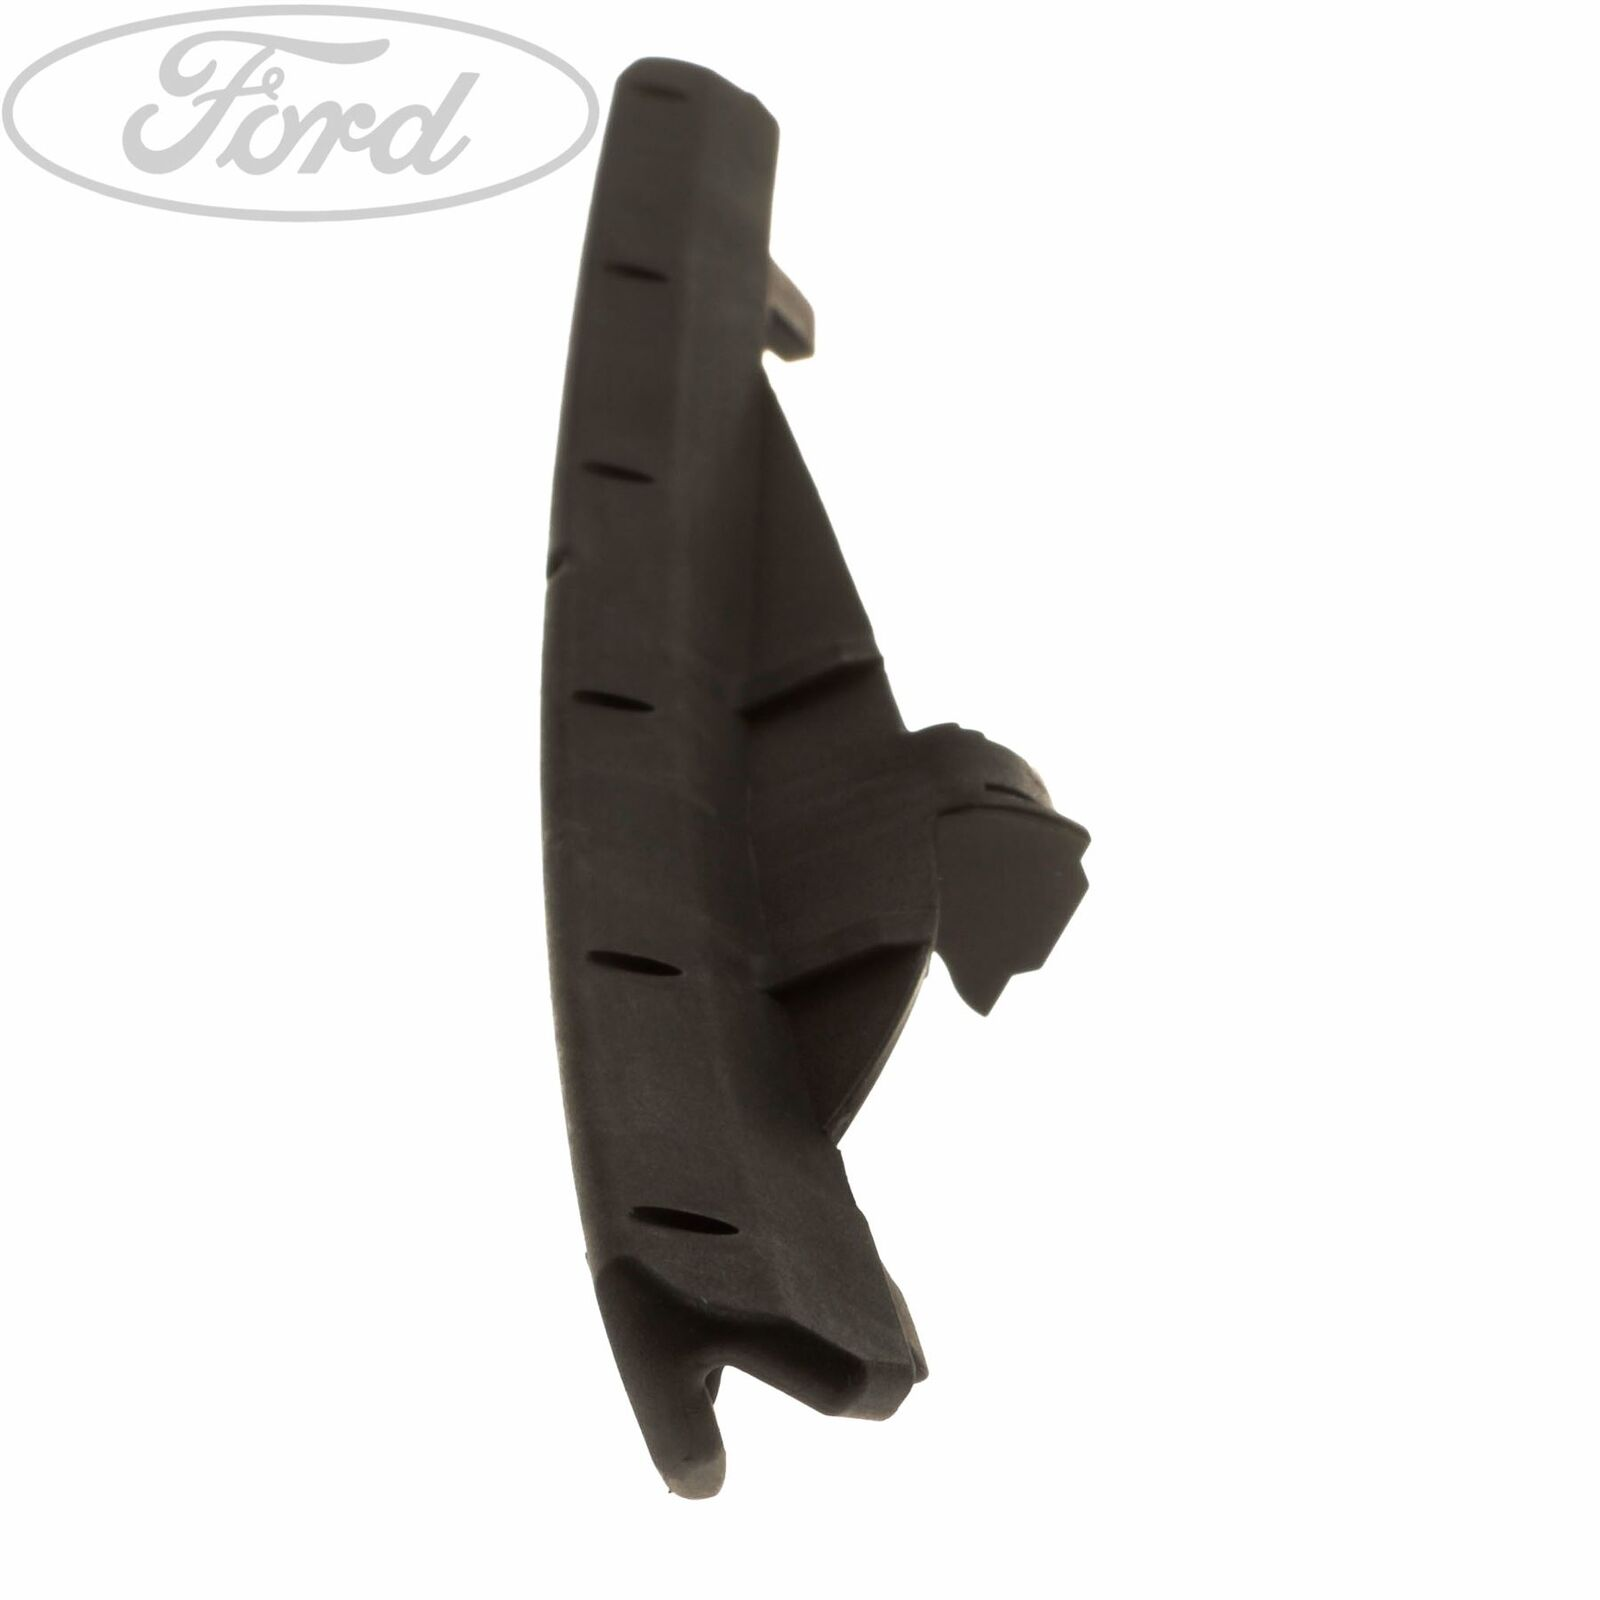 Genuine Ford Focus Rh Front Door Edge Guard 1879782 Ebay Wiring Harness Norton Secured Powered By Verisign